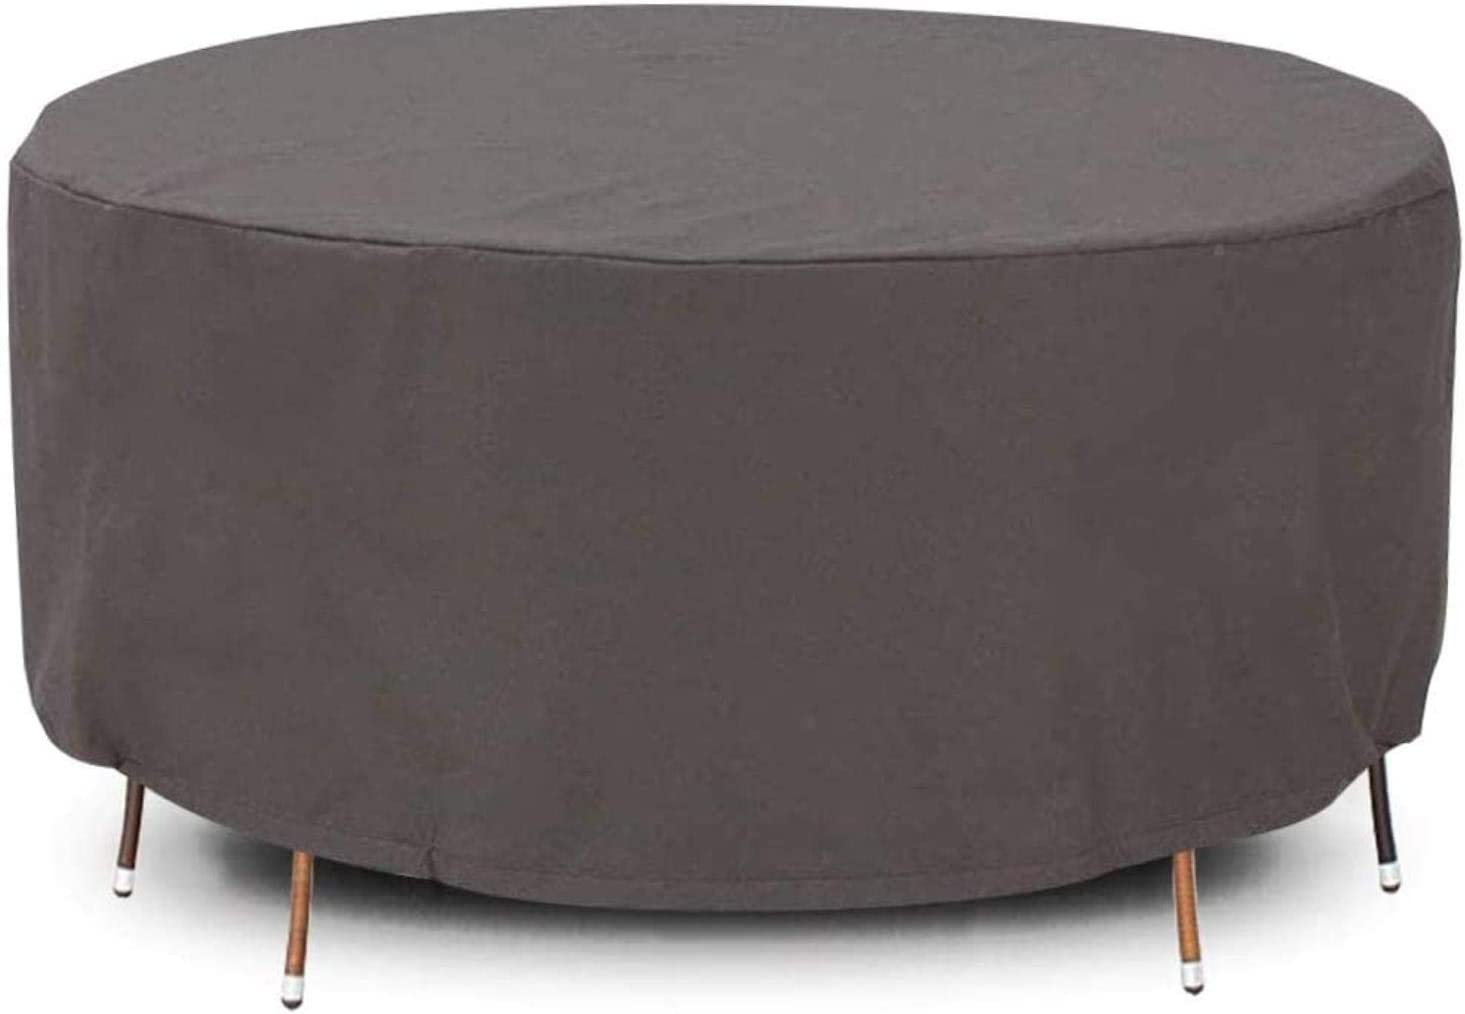 Amazon Com Baofi Round Patio Furniture Cover 320x105cm Garden Furniture Covers Patio Table Covers Patio Large Table And Chair Covers Outdoor Waterproof Windproof Drawstring With Hem Brown Home Kitchen